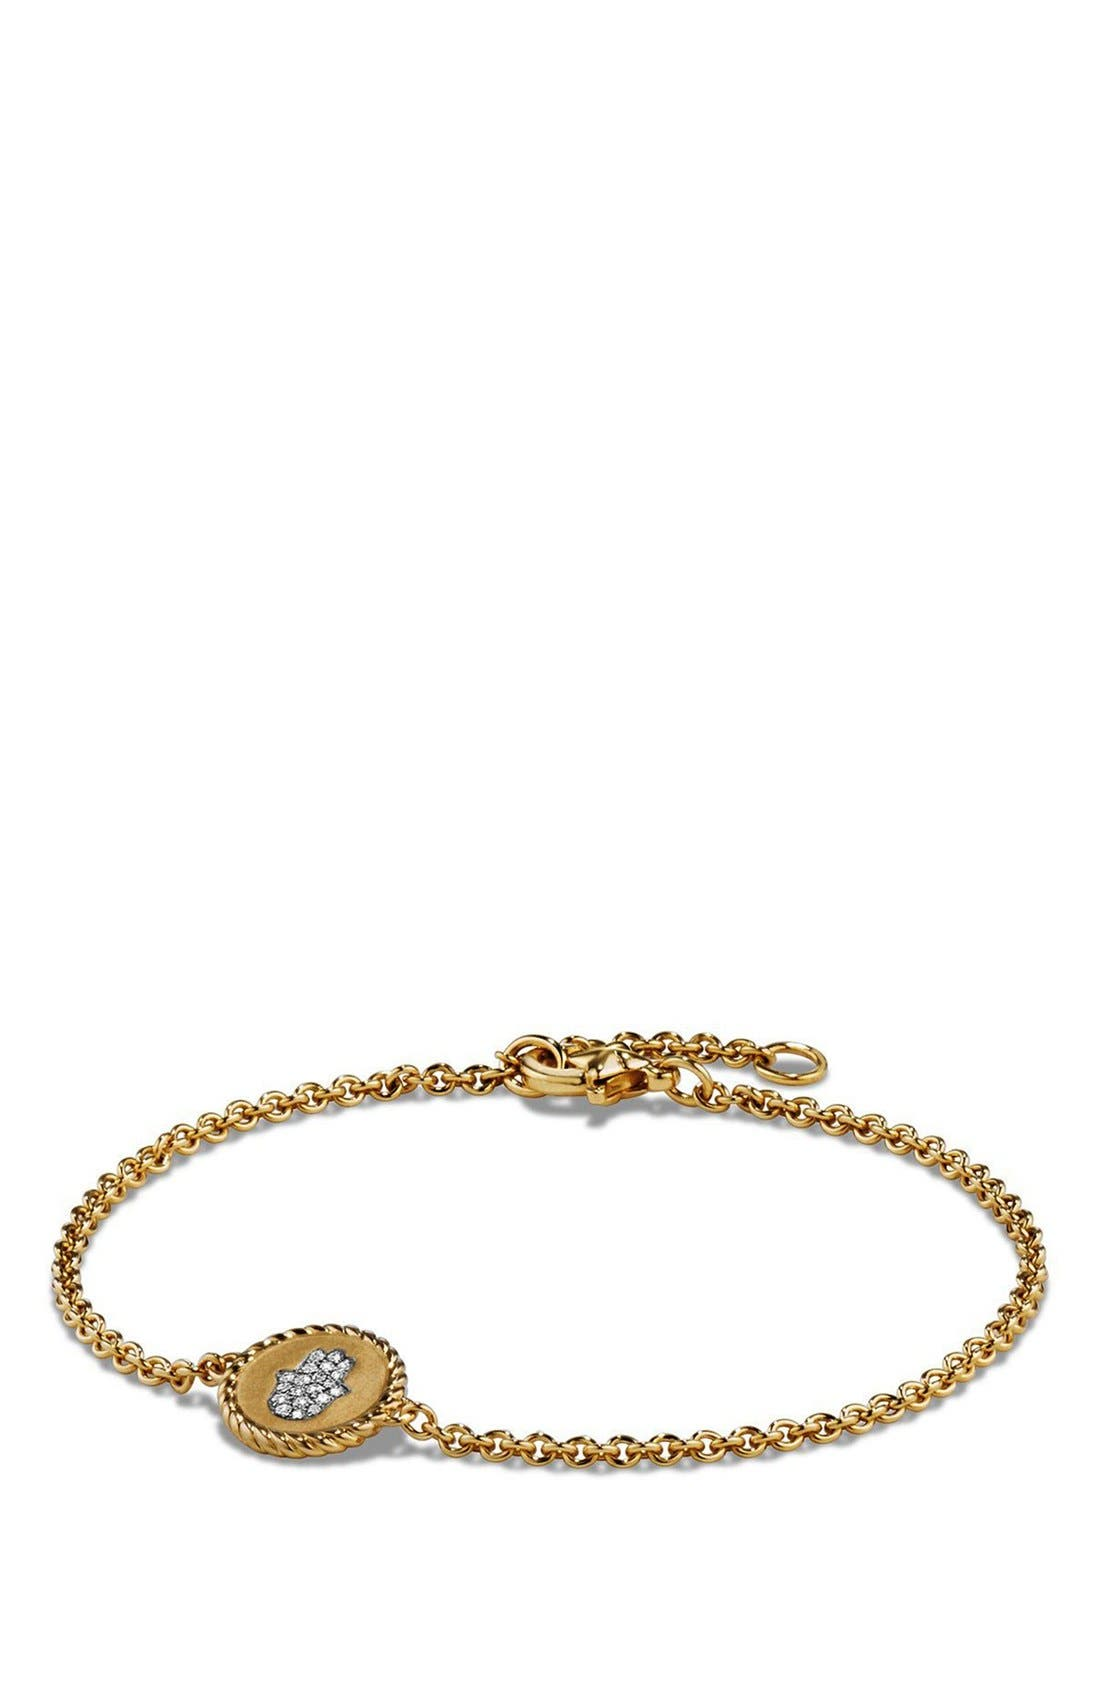 David Yurman 'Petite Pavé' Hamsa Bracelet with Diamonds in 18K Gold